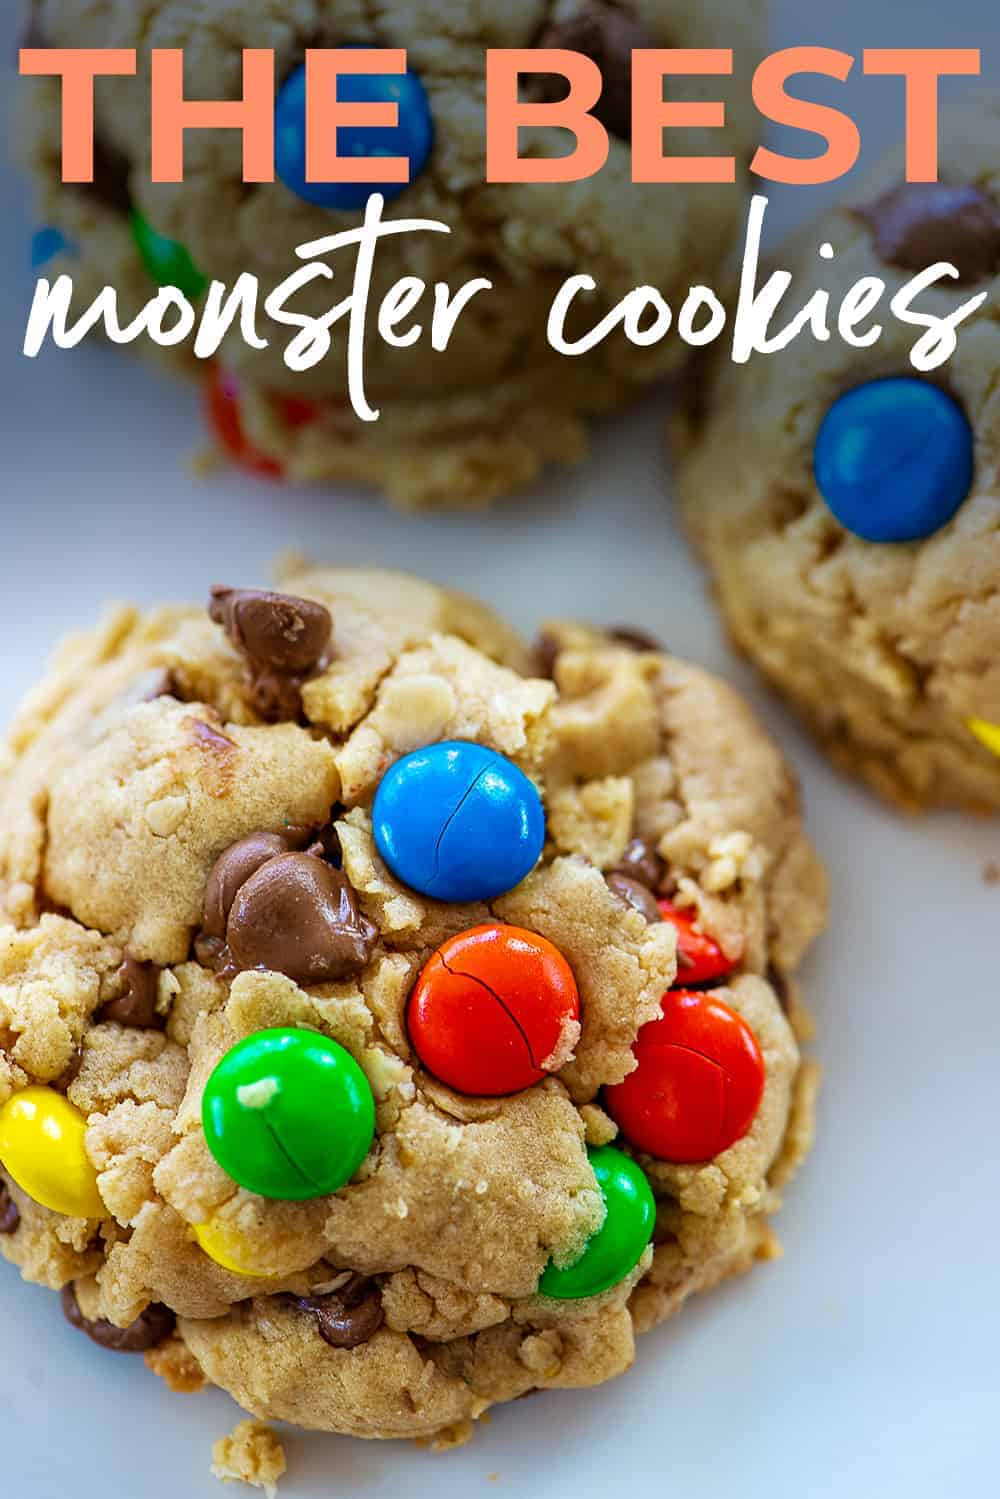 monster cookie image with text for pinterest.